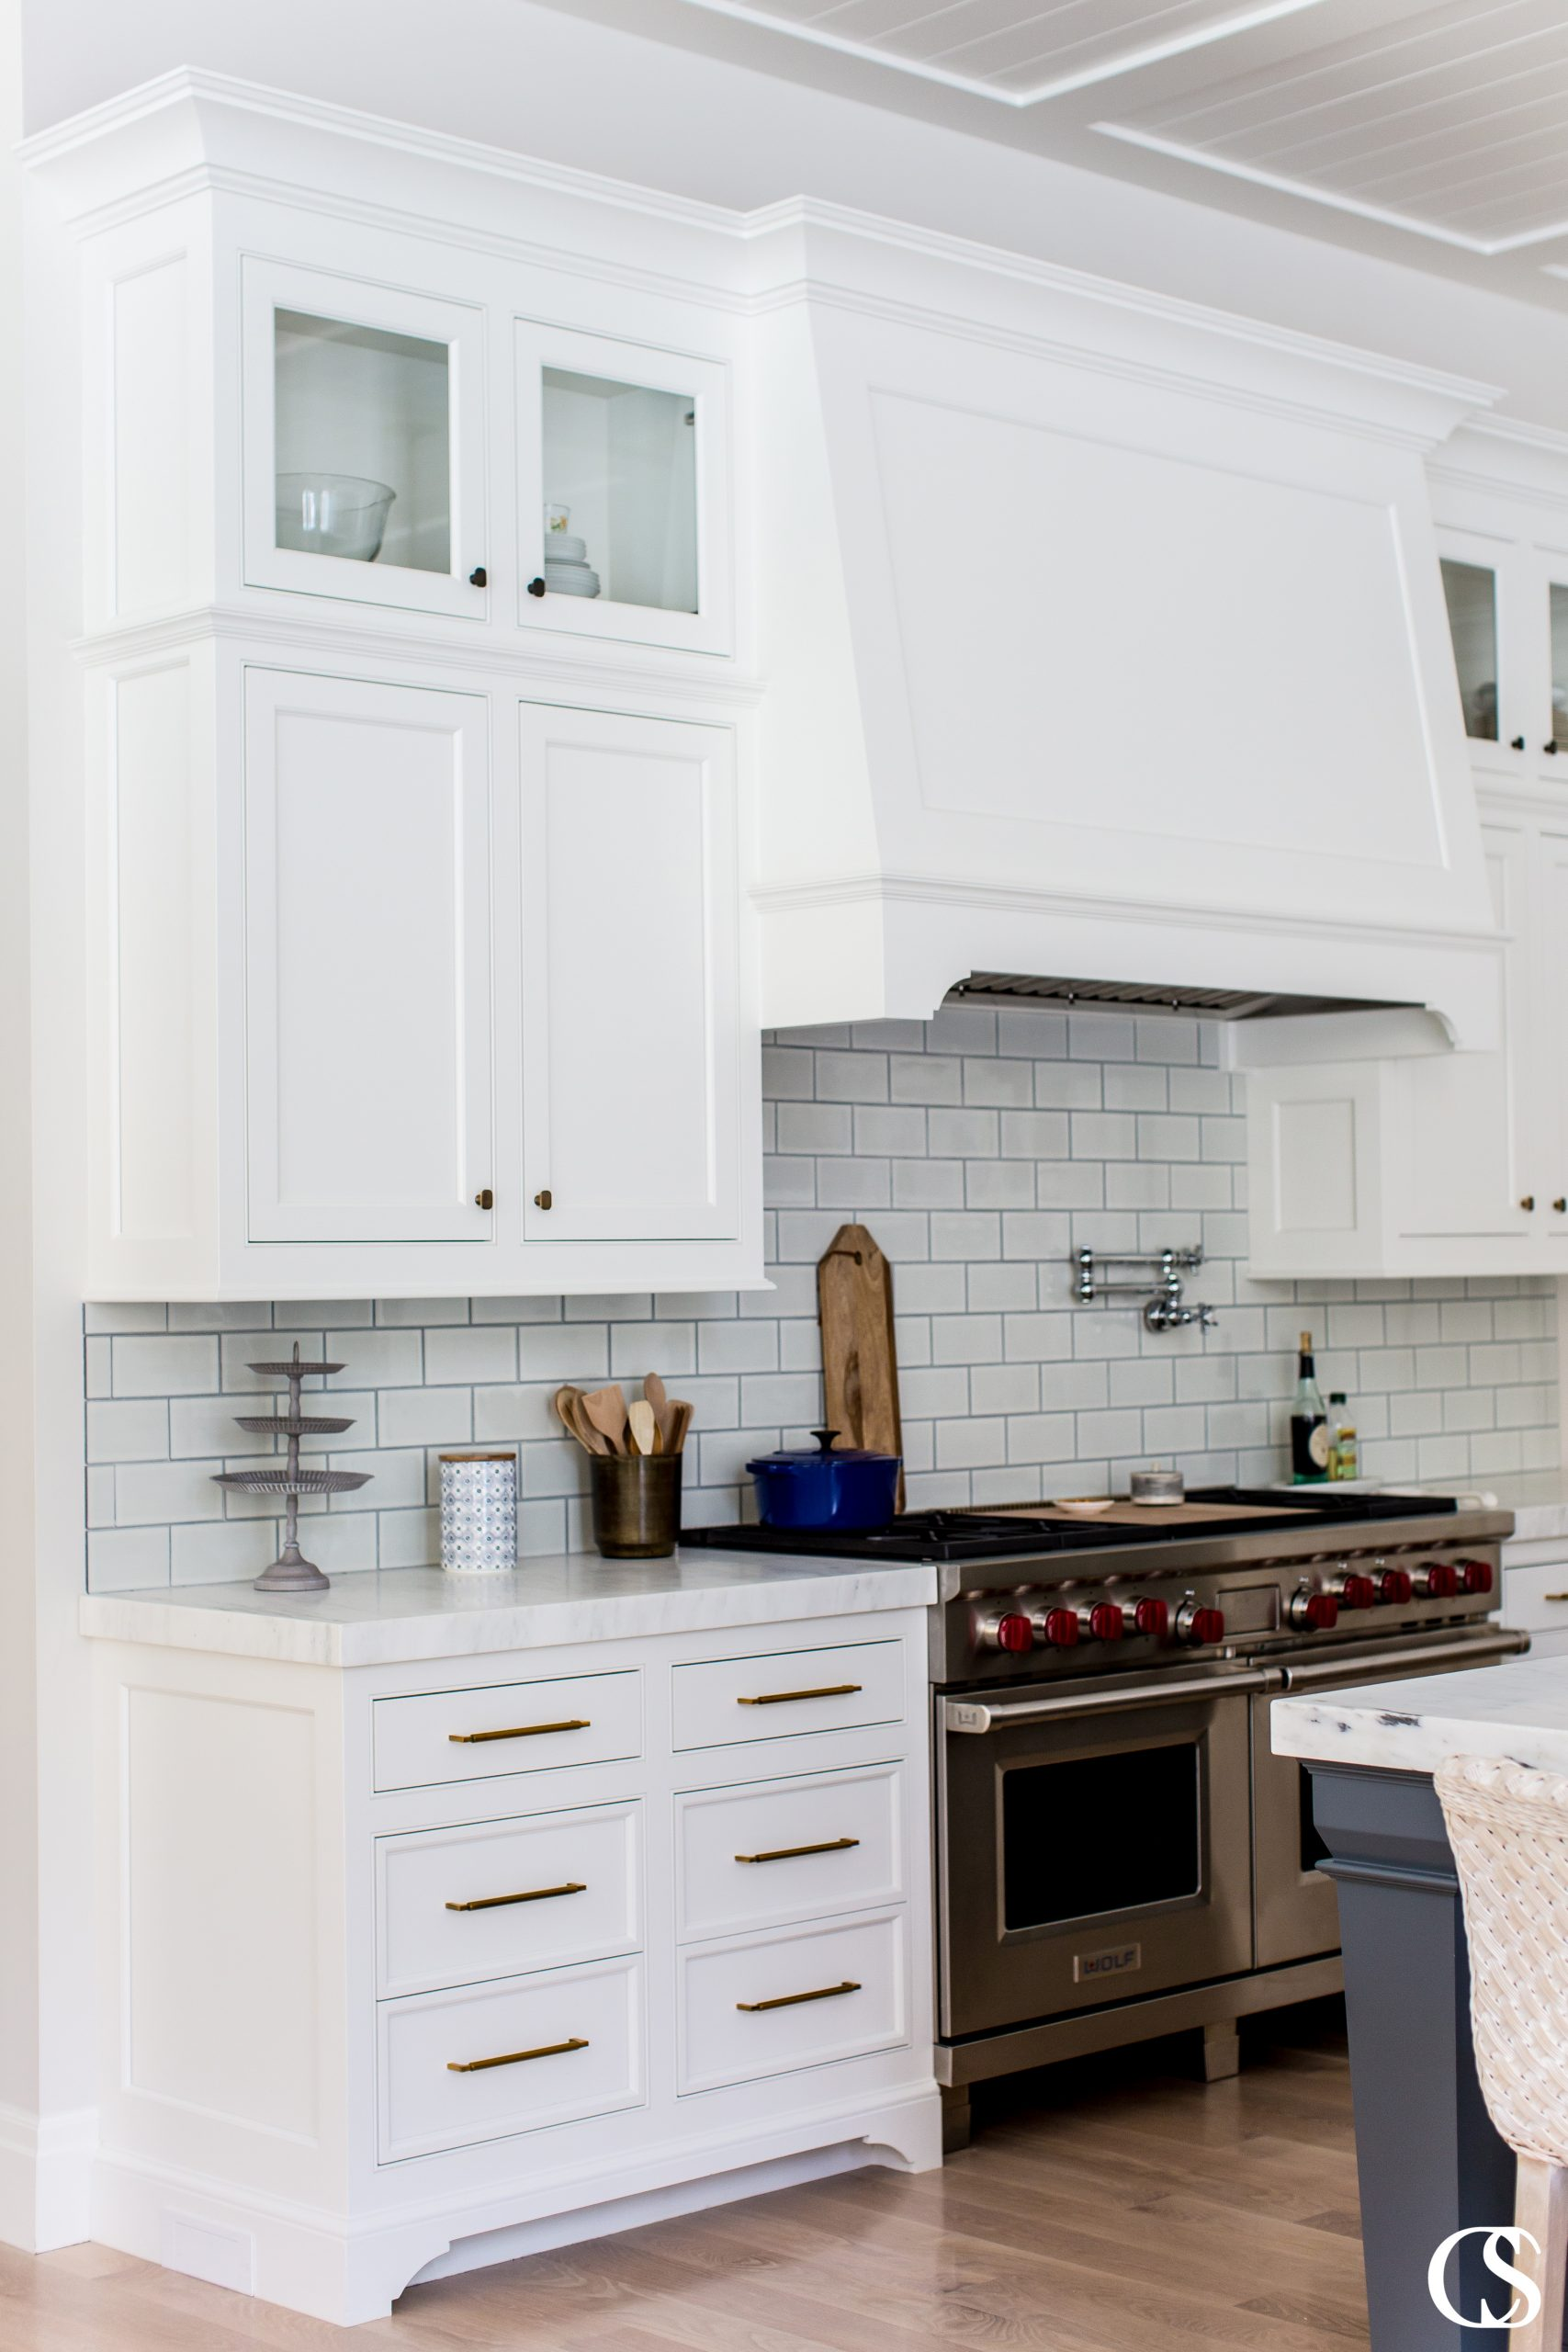 The best custom kitchen cabinet design ideas are those that have flawless functionality and look beautiful simultaneously.